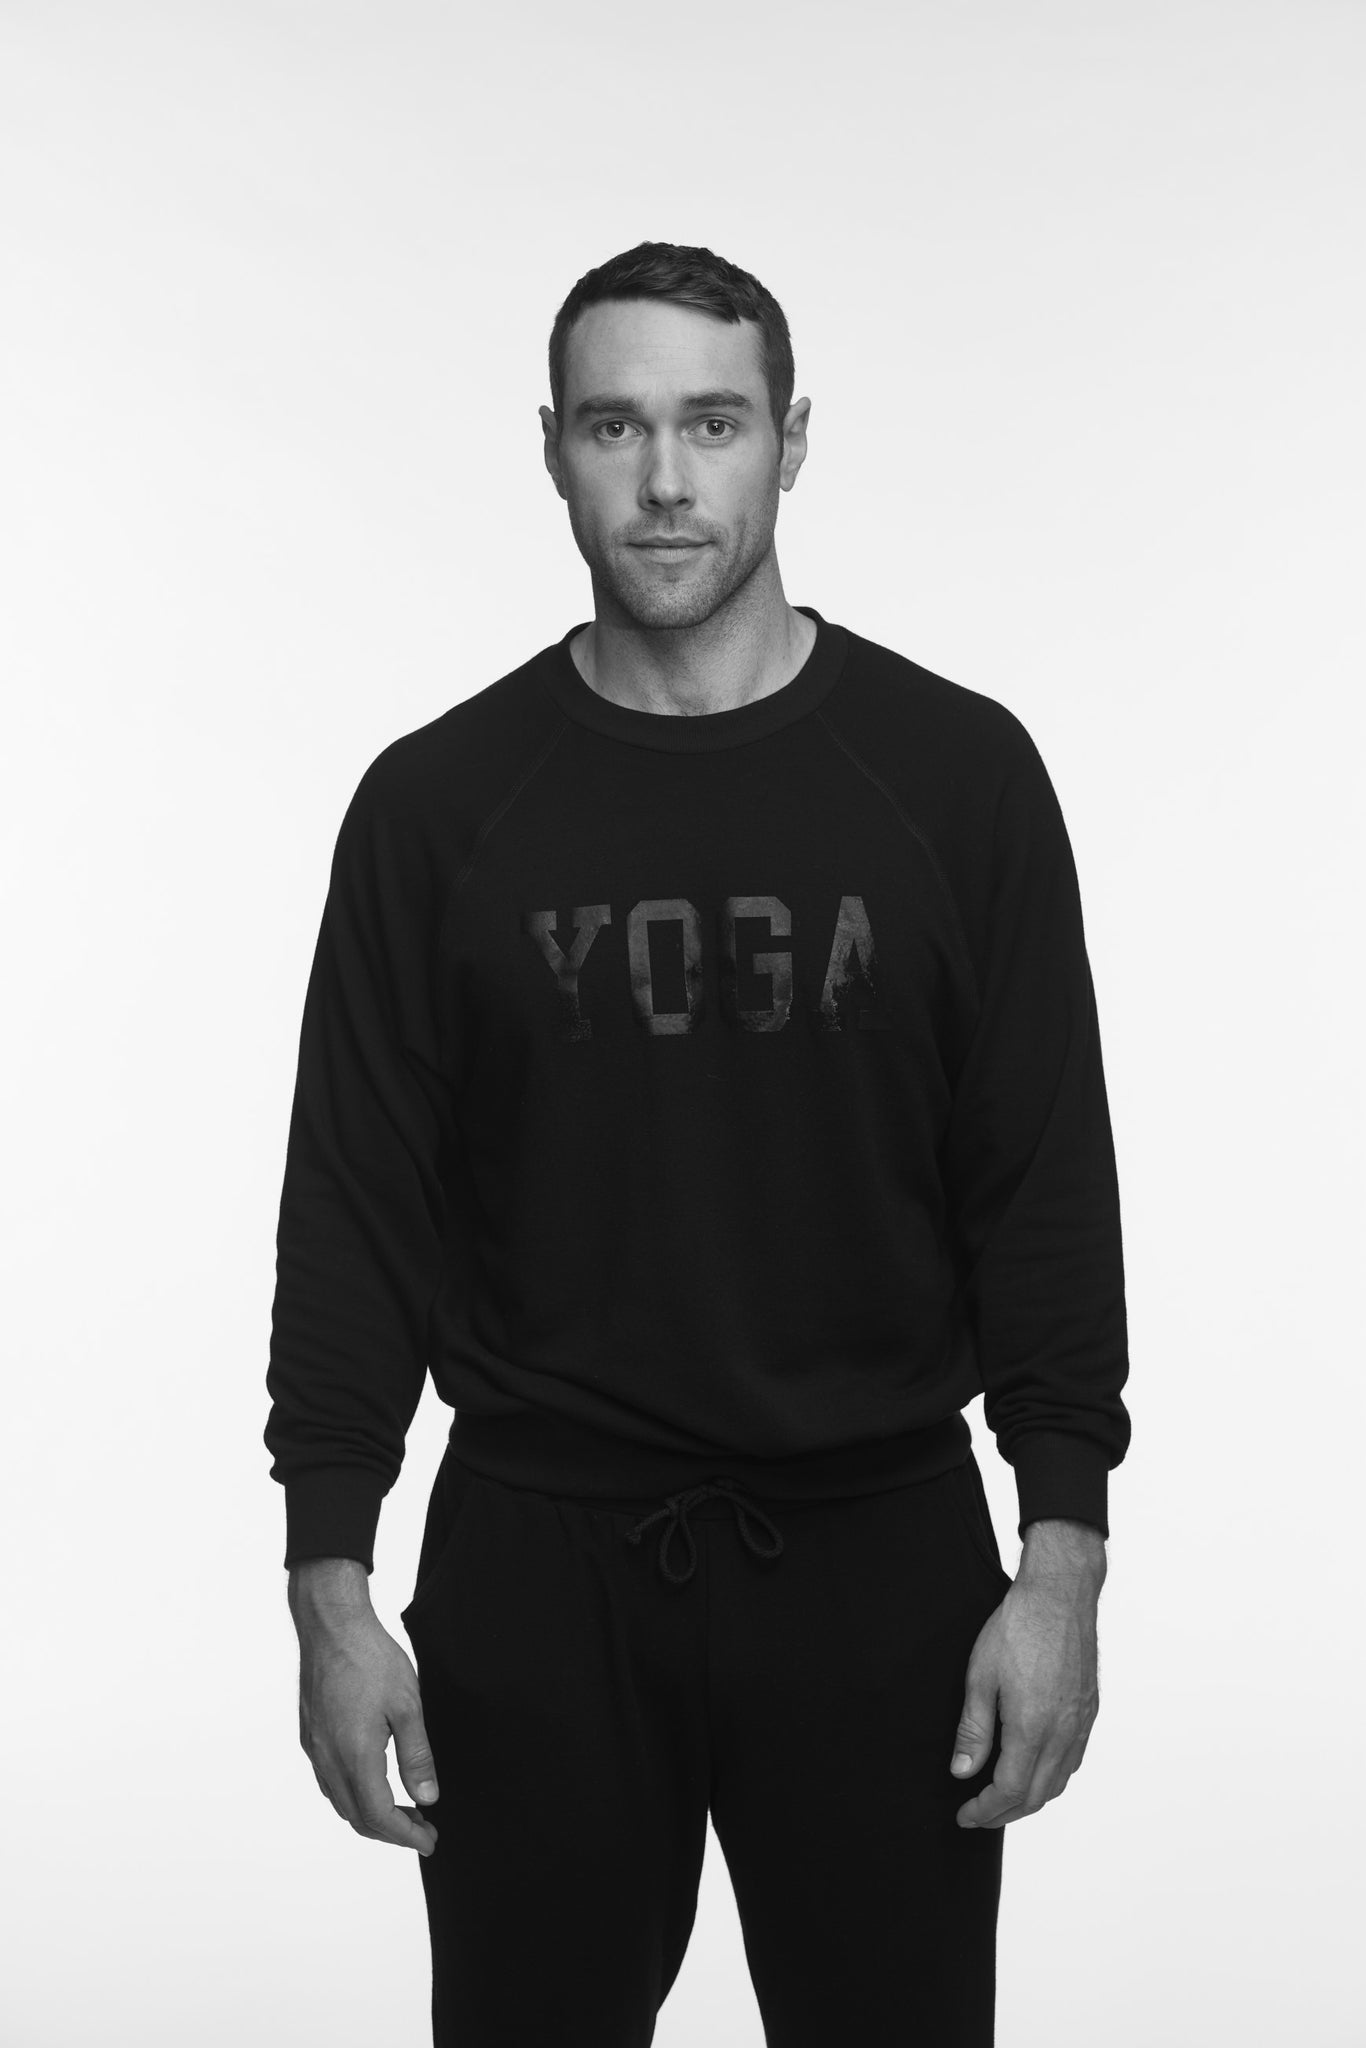 MEN'S YOGA SWEATSHIRT BLACK ON BLACK - Haven Collective